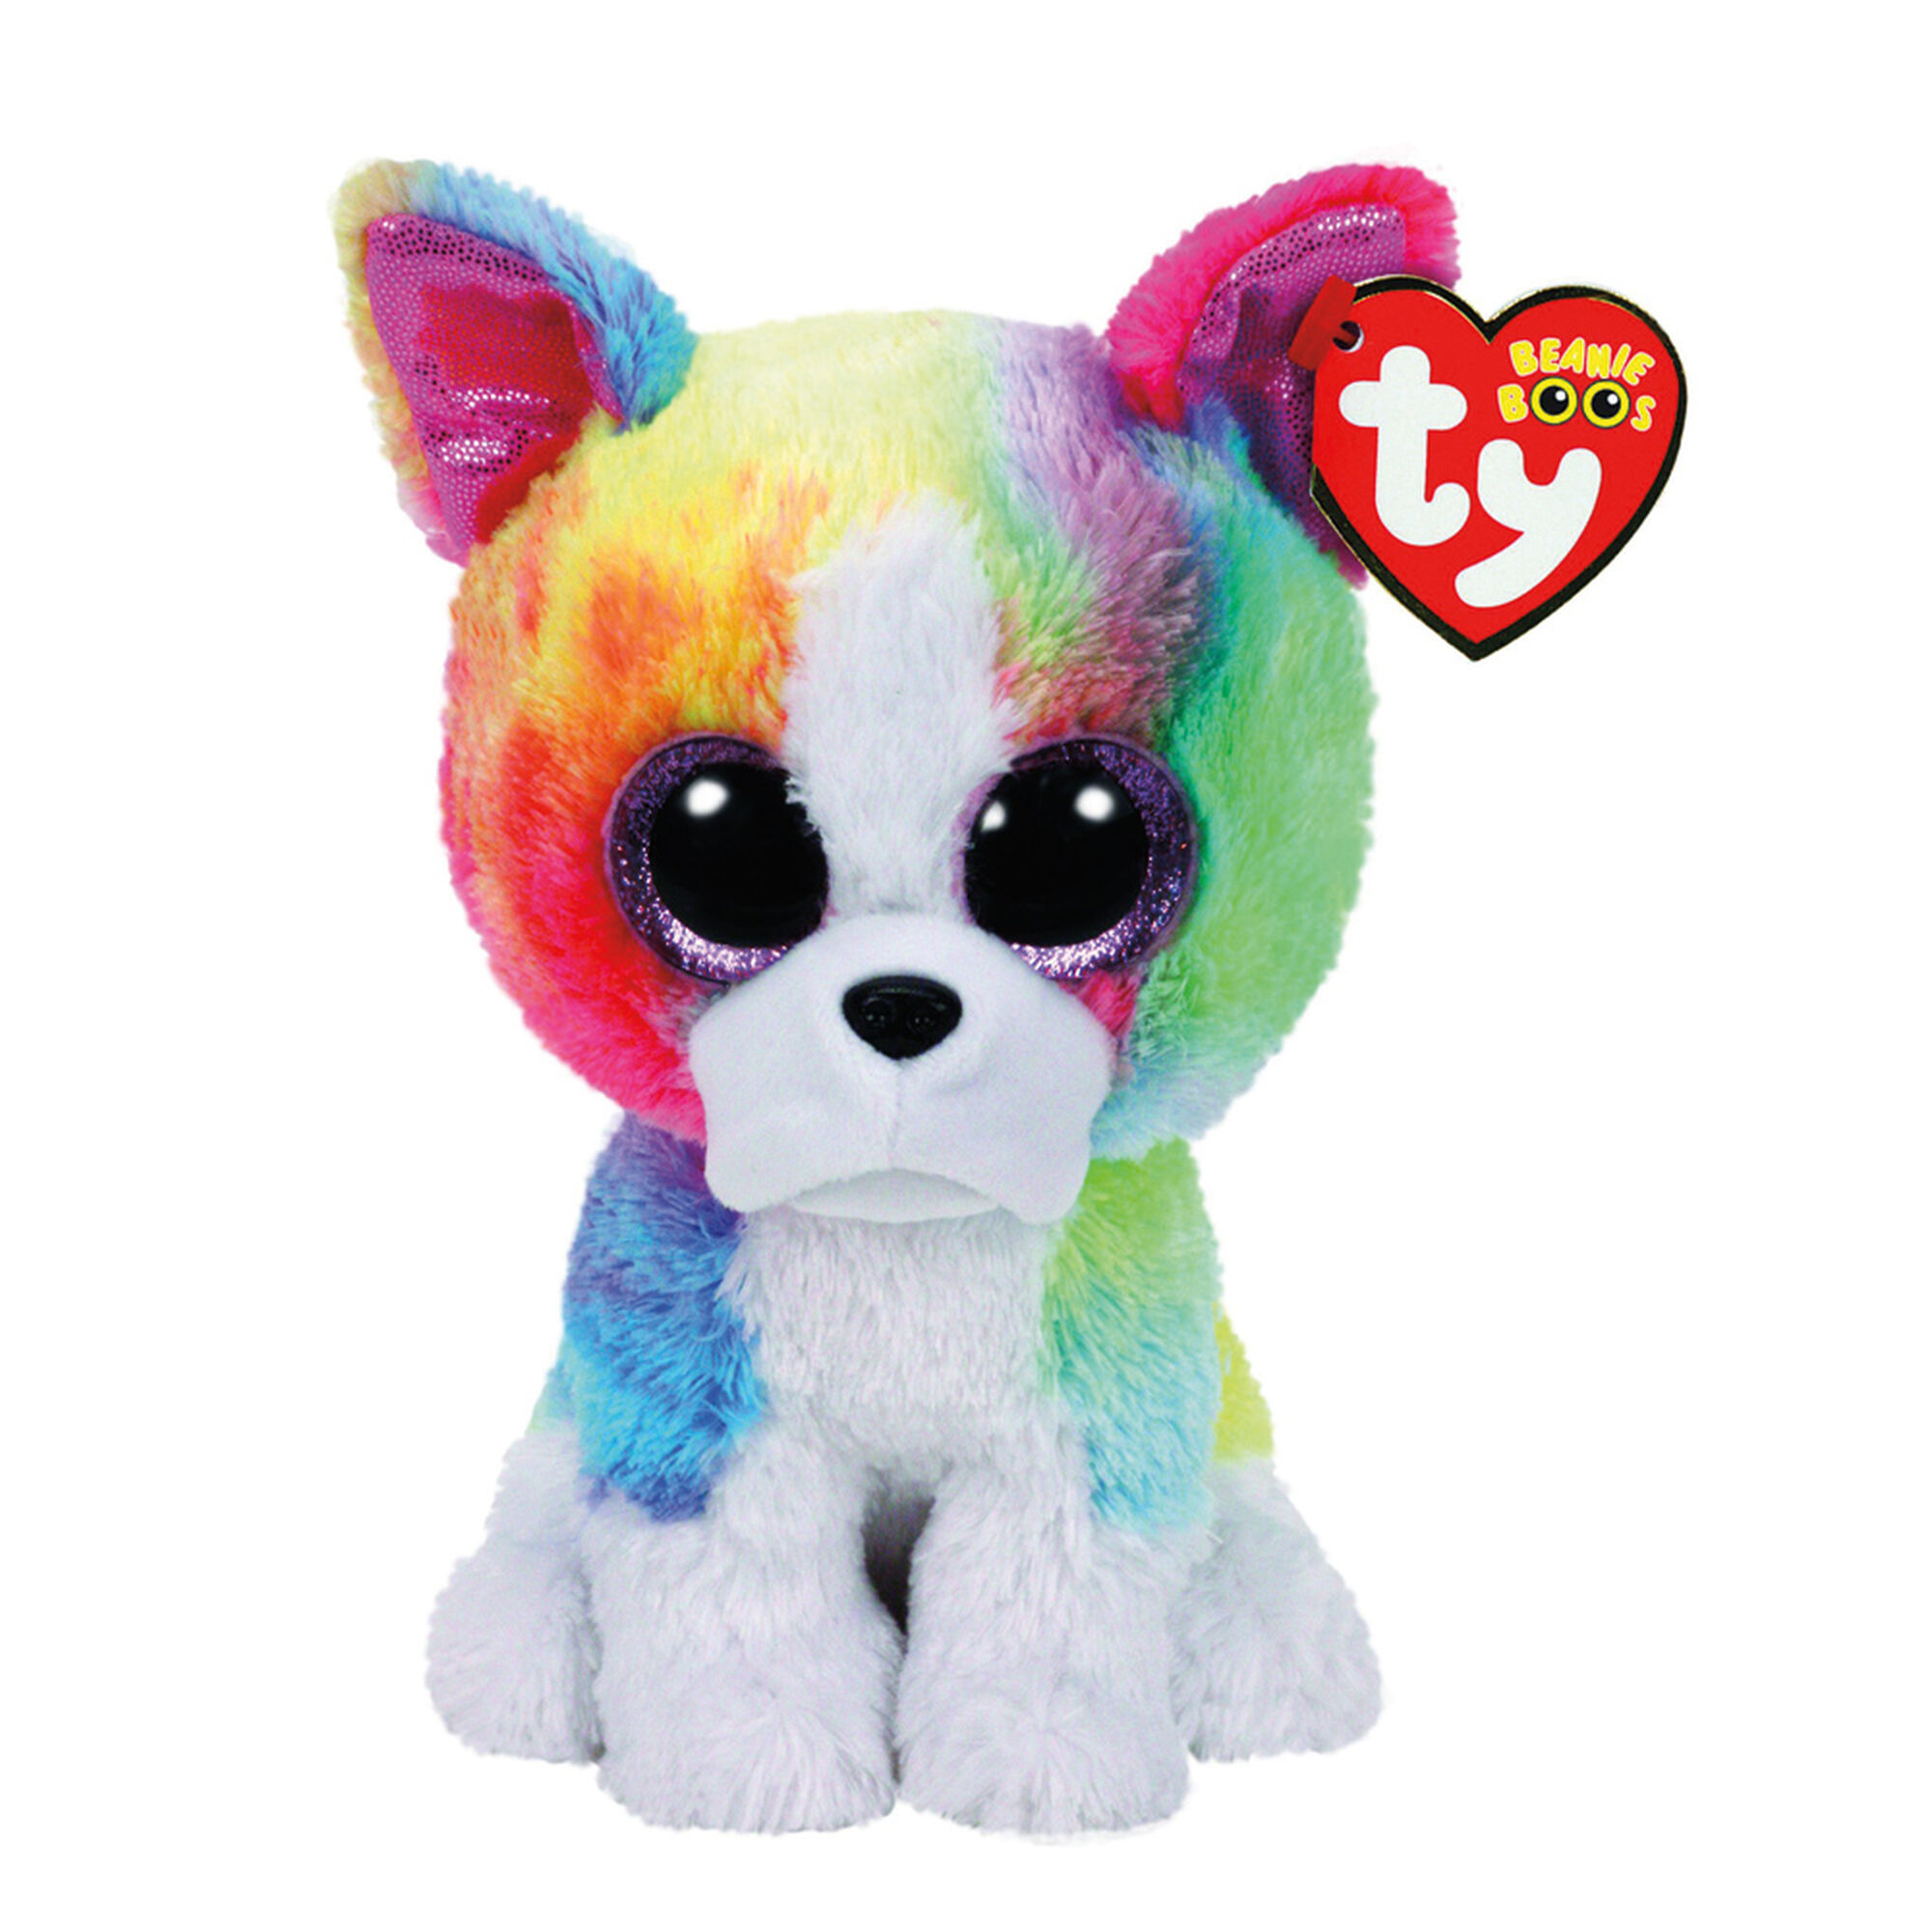 TY Beanie Boo Small Isla the Rainbow Bulldog Plush Toy